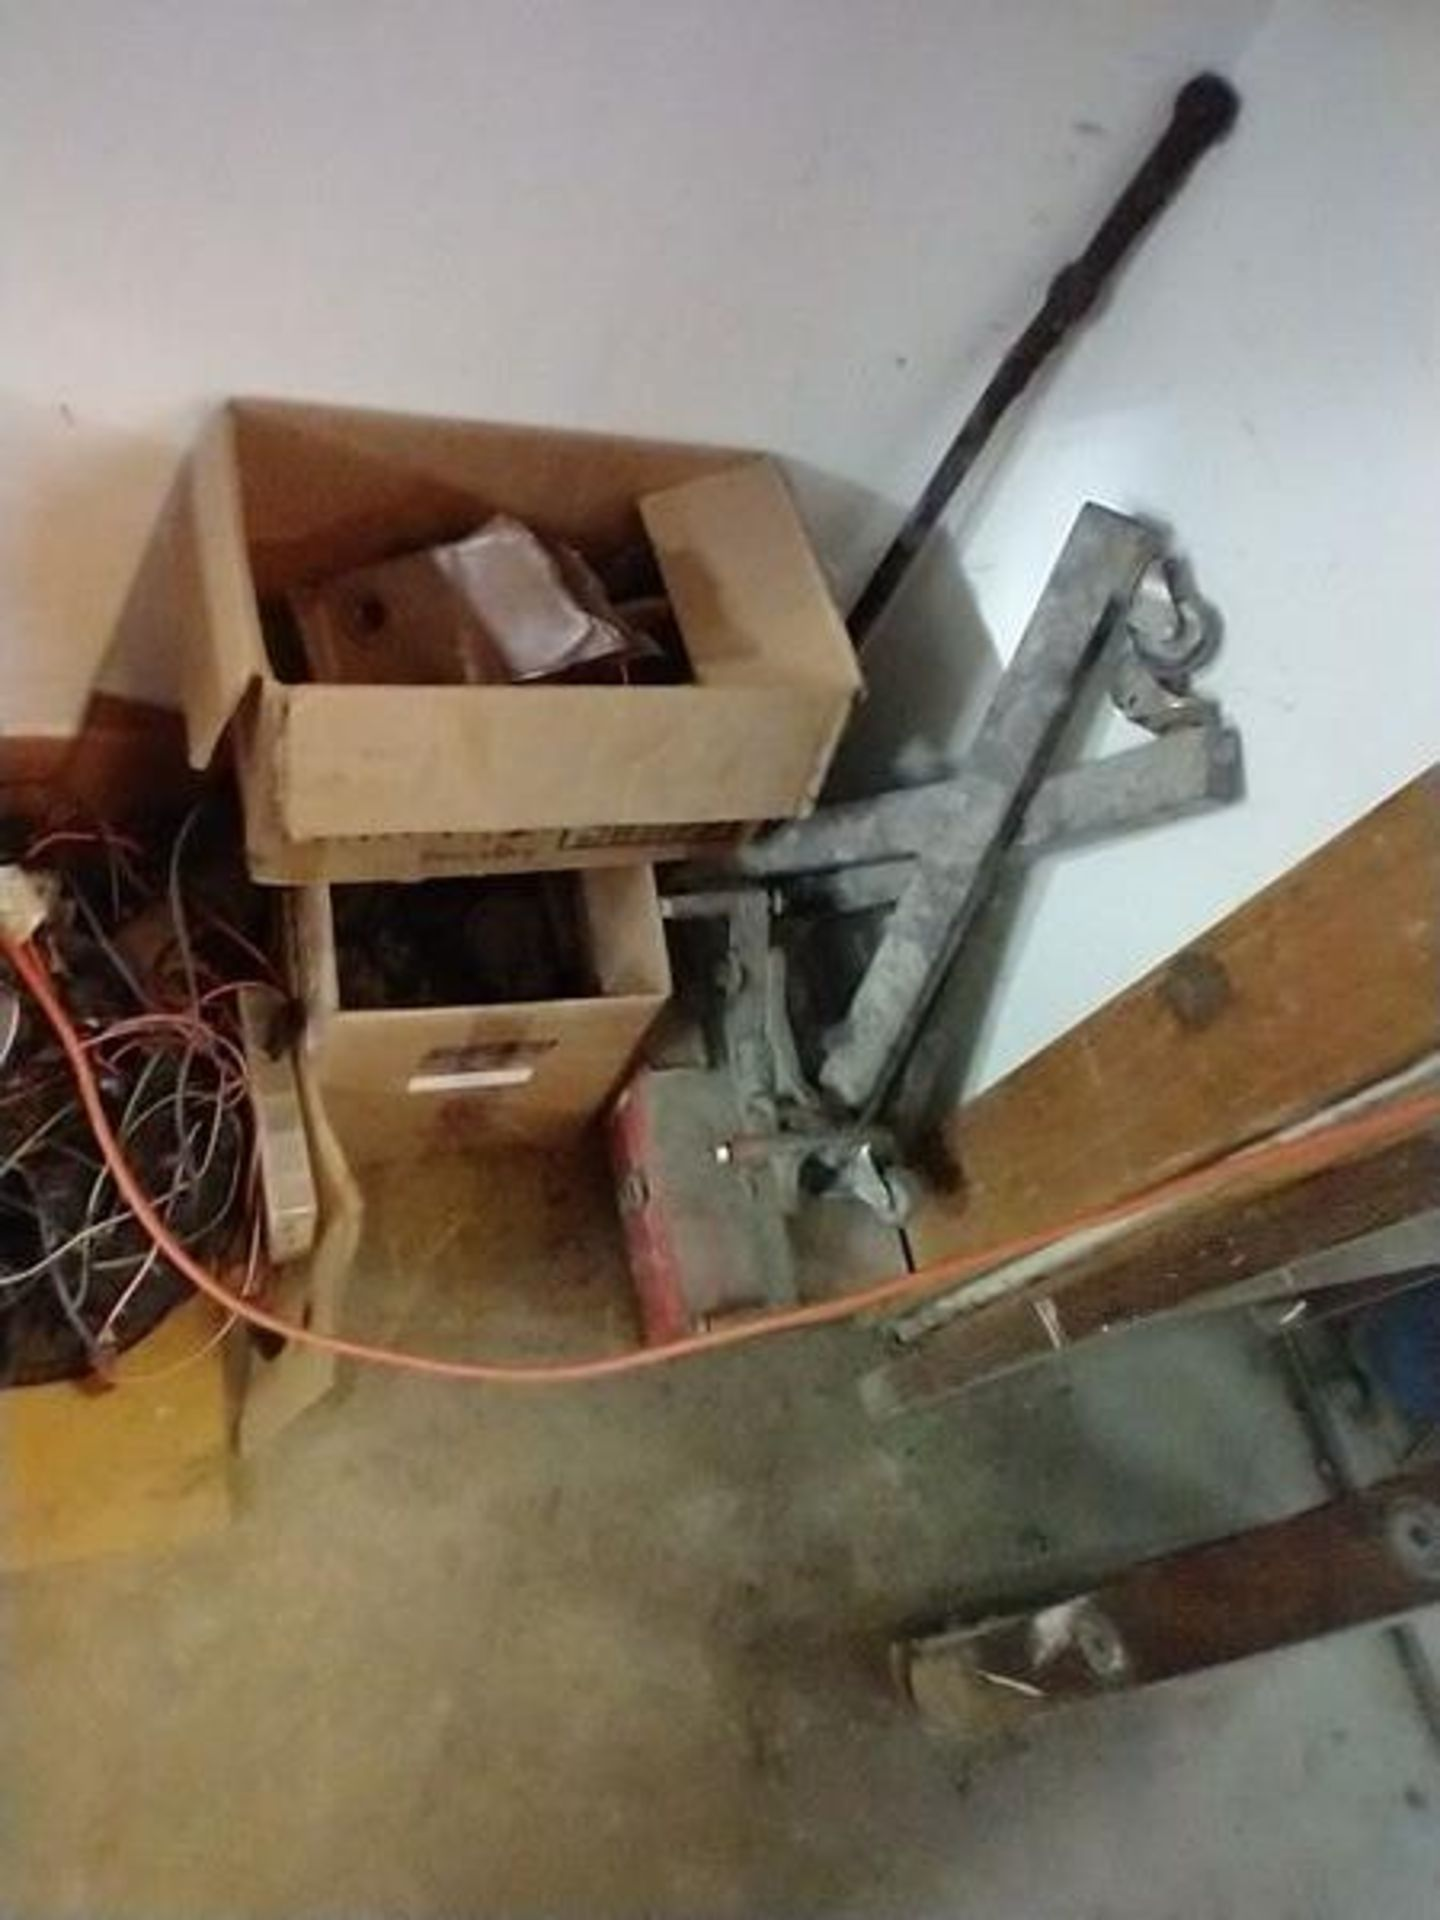 LOT OF ASSORTED CAR PARTS ON 2 SHELVES AND FLOOR - Image 23 of 23